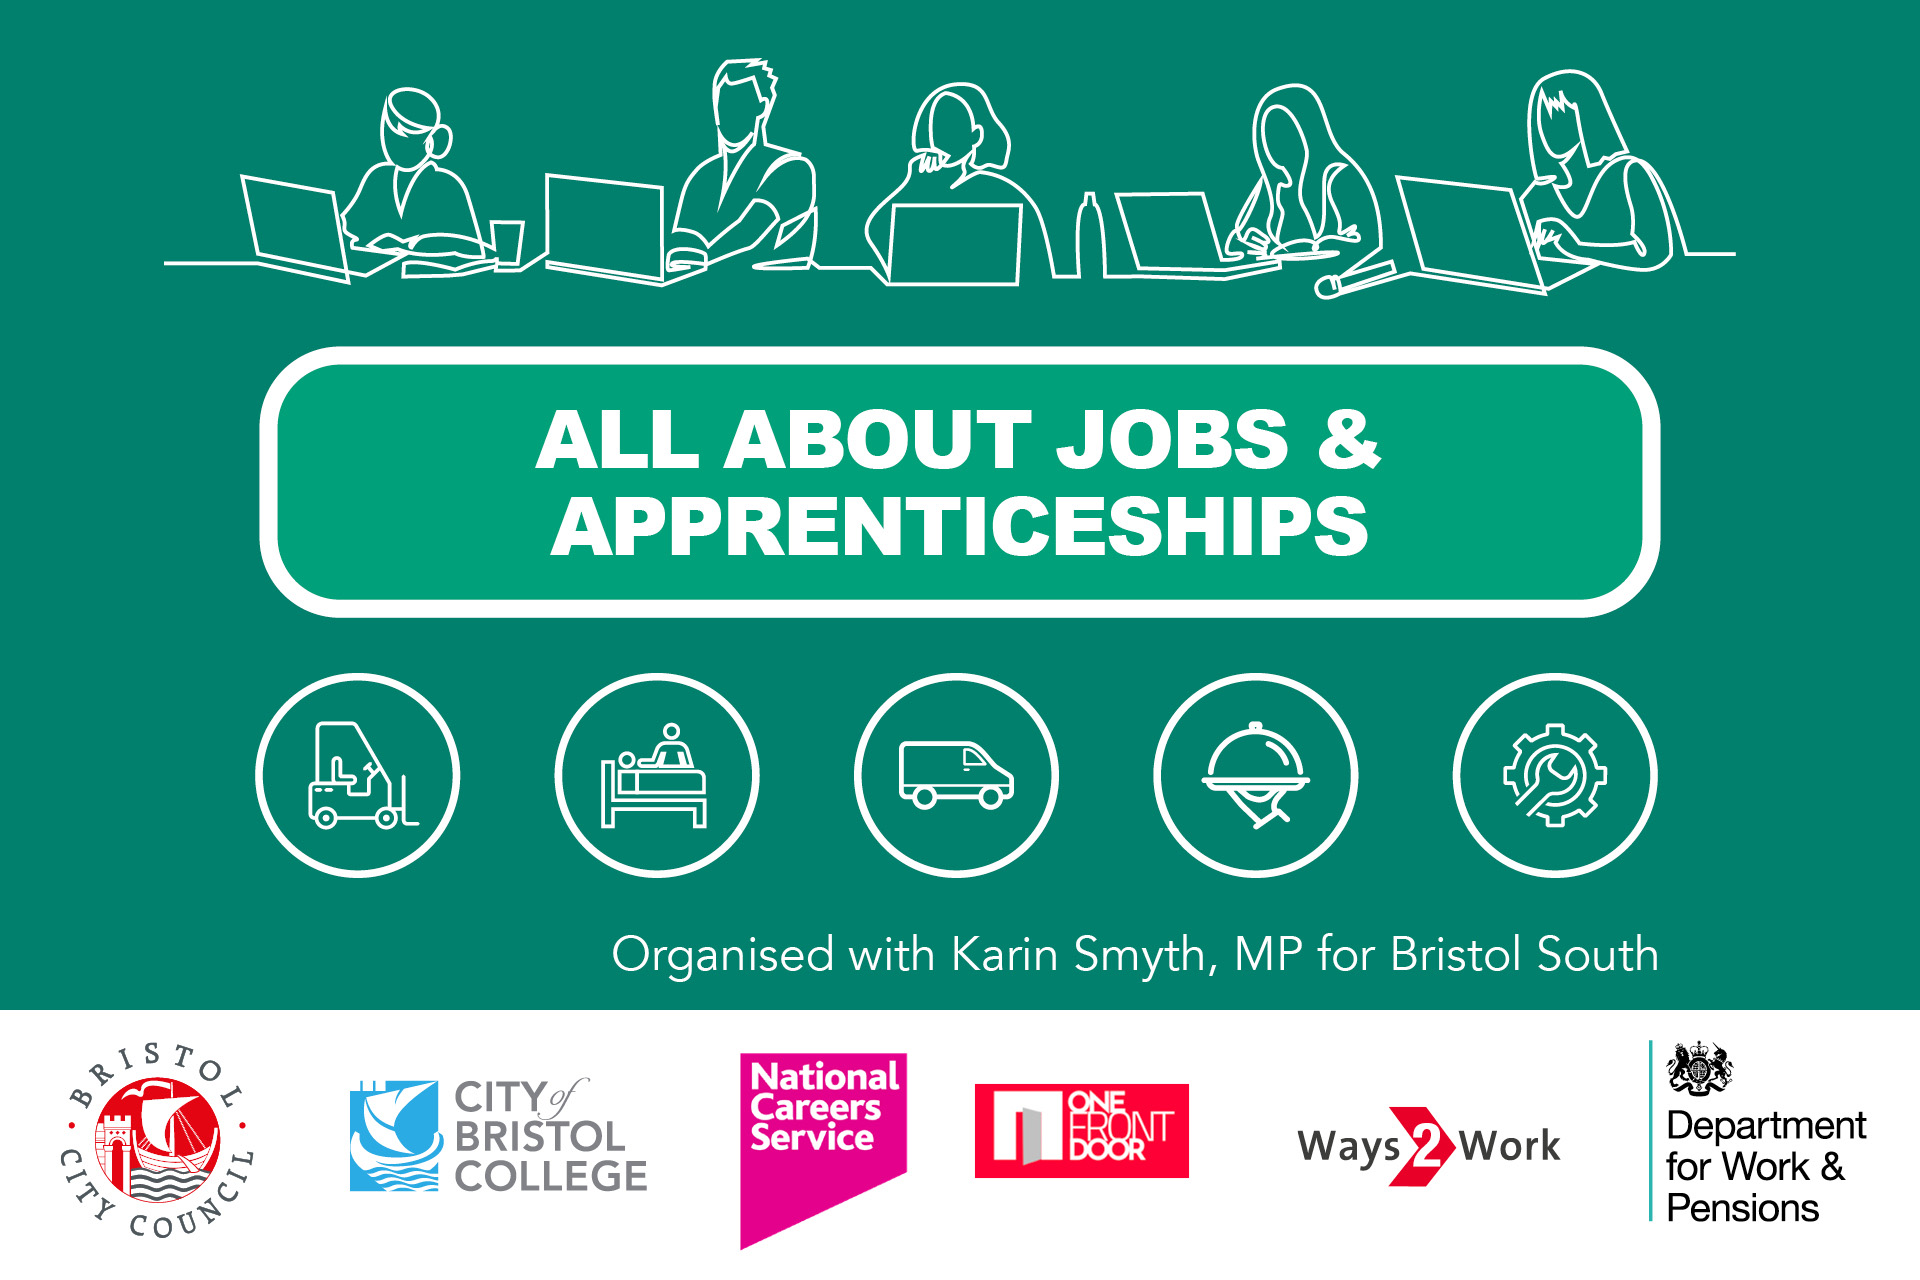 All About Jobs & Apprenticeships